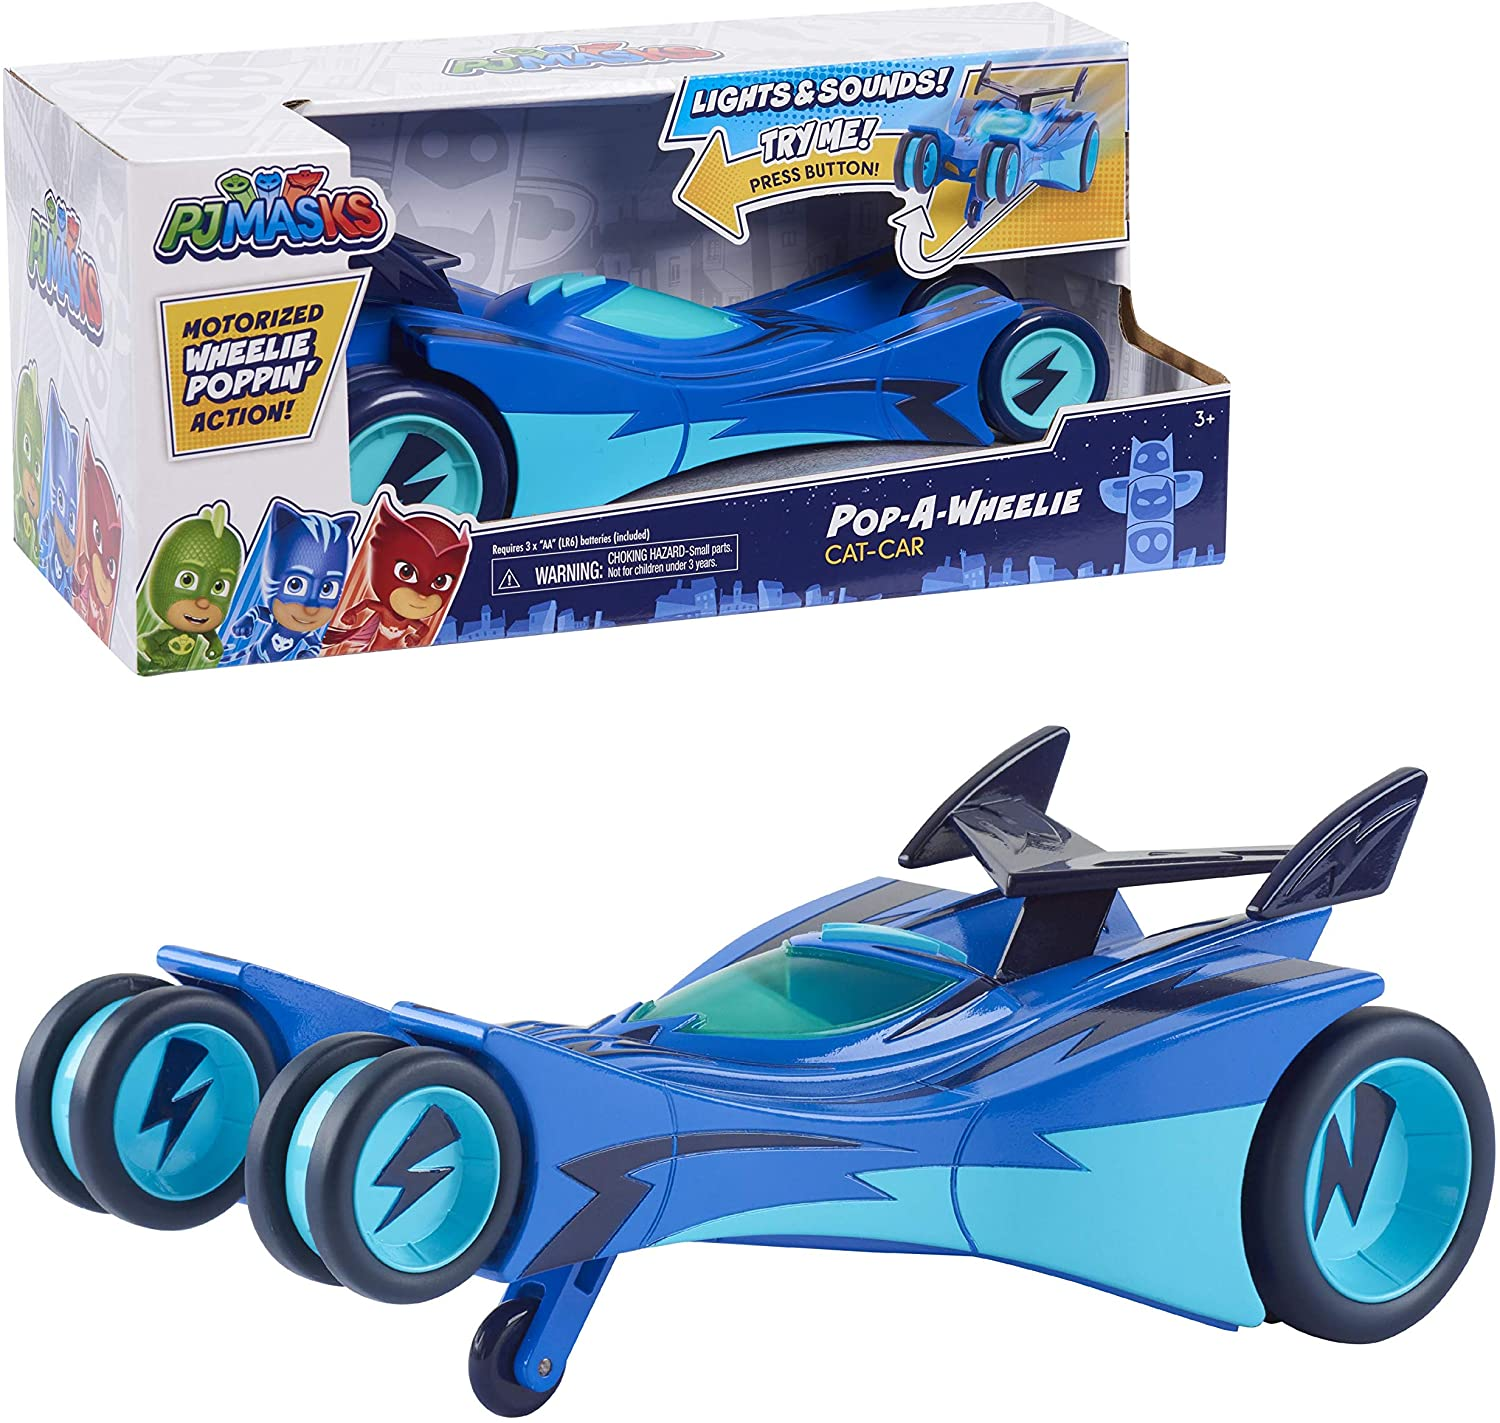 PJ Masks Pop-A-Wheelies - Cat Car